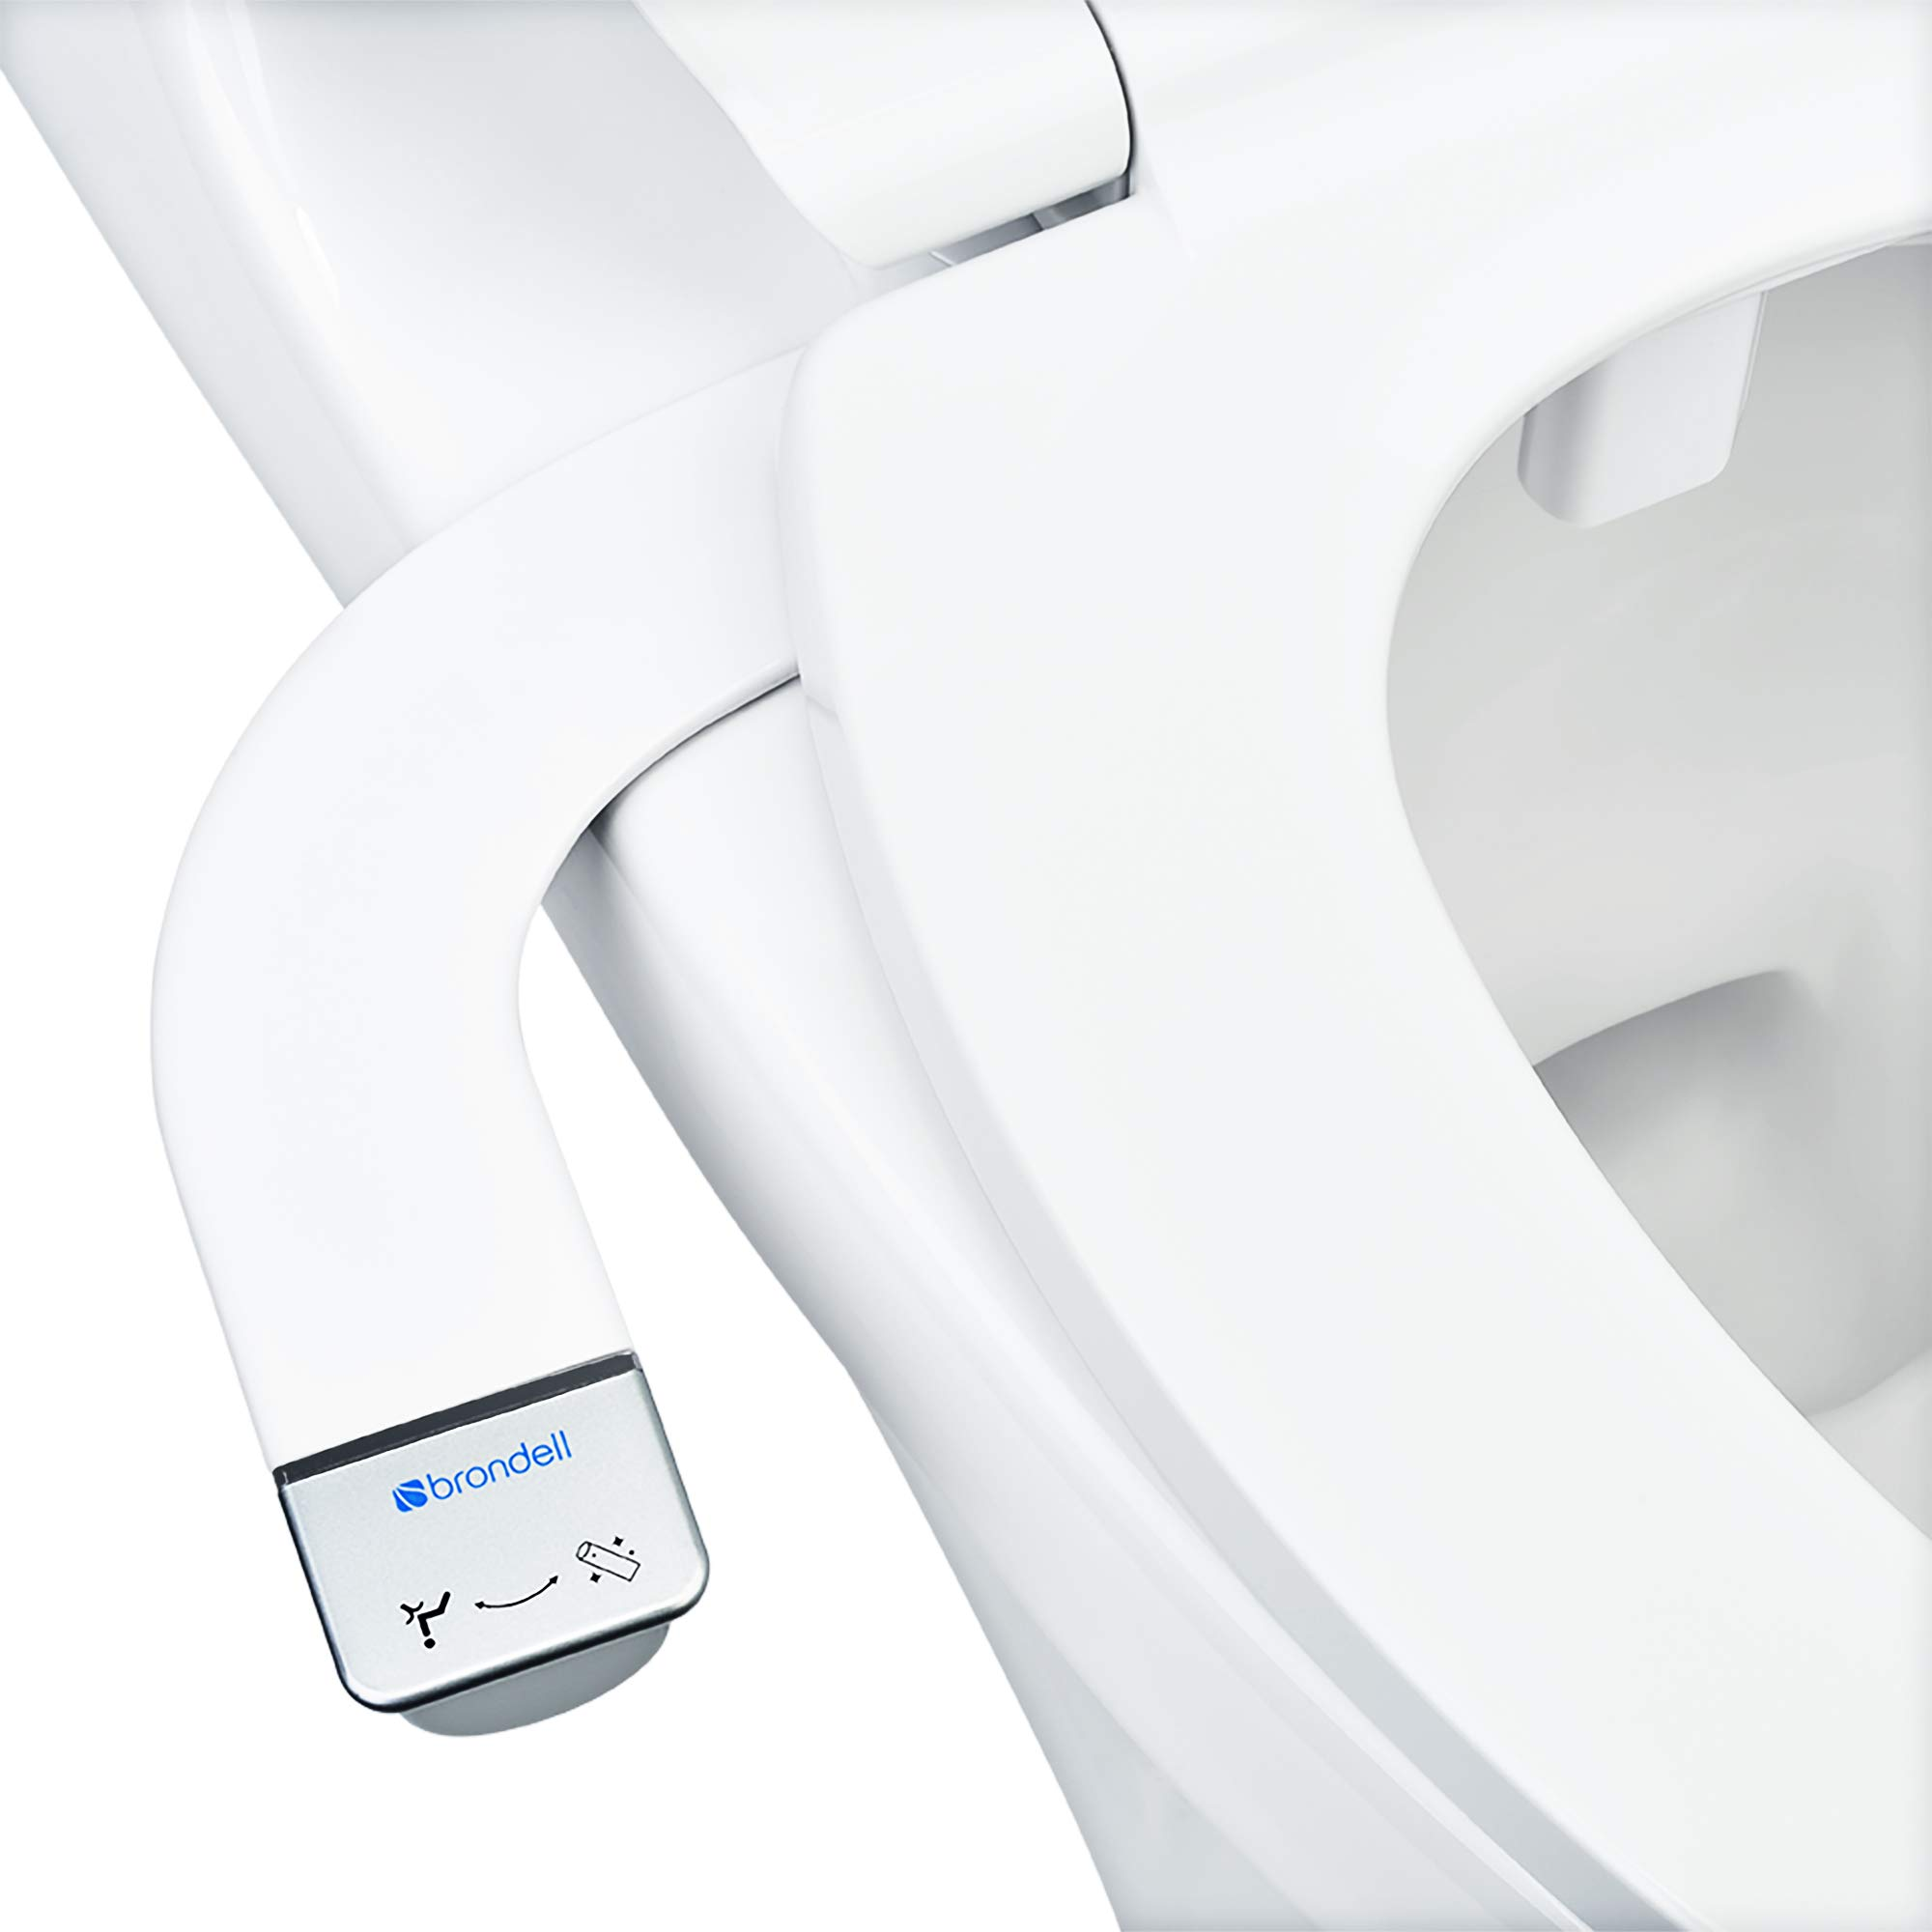 Brondell Bidet - Thinline SimpleSpa SS-150 | Fresh Water Spray | Non-Electric | Bidet Toilet Attachment in White with Self Cleaning Nozzle | SafeCore Internal Valve | Nozzle Guard | Easy to Install